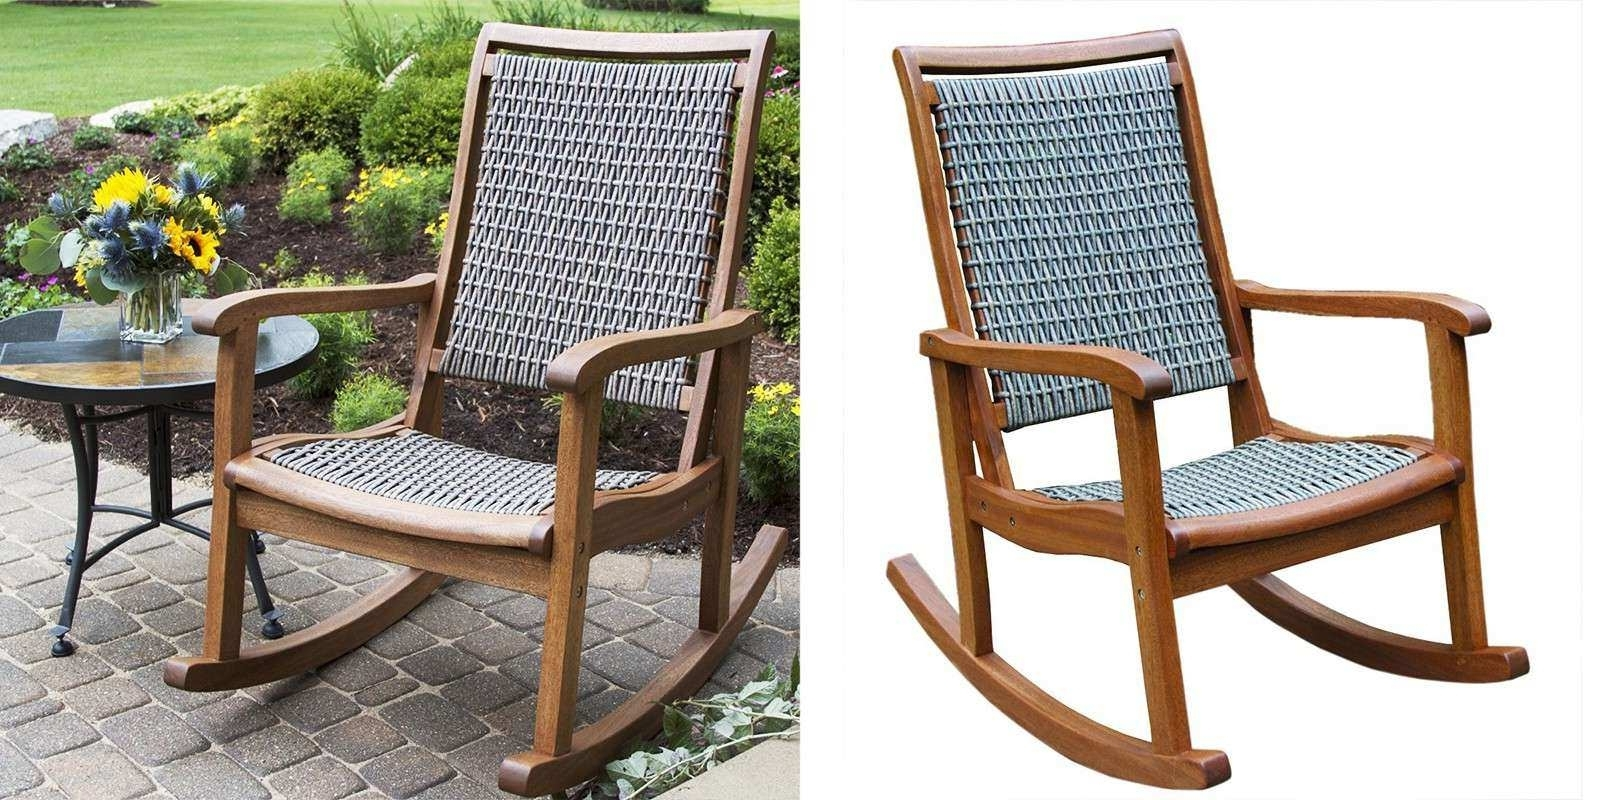 Resin Patio Rocking Chairs For Recent Resin Outdoor Furniture Awesome Resin Patio Rocking Chairs Modern (View 6 of 20)